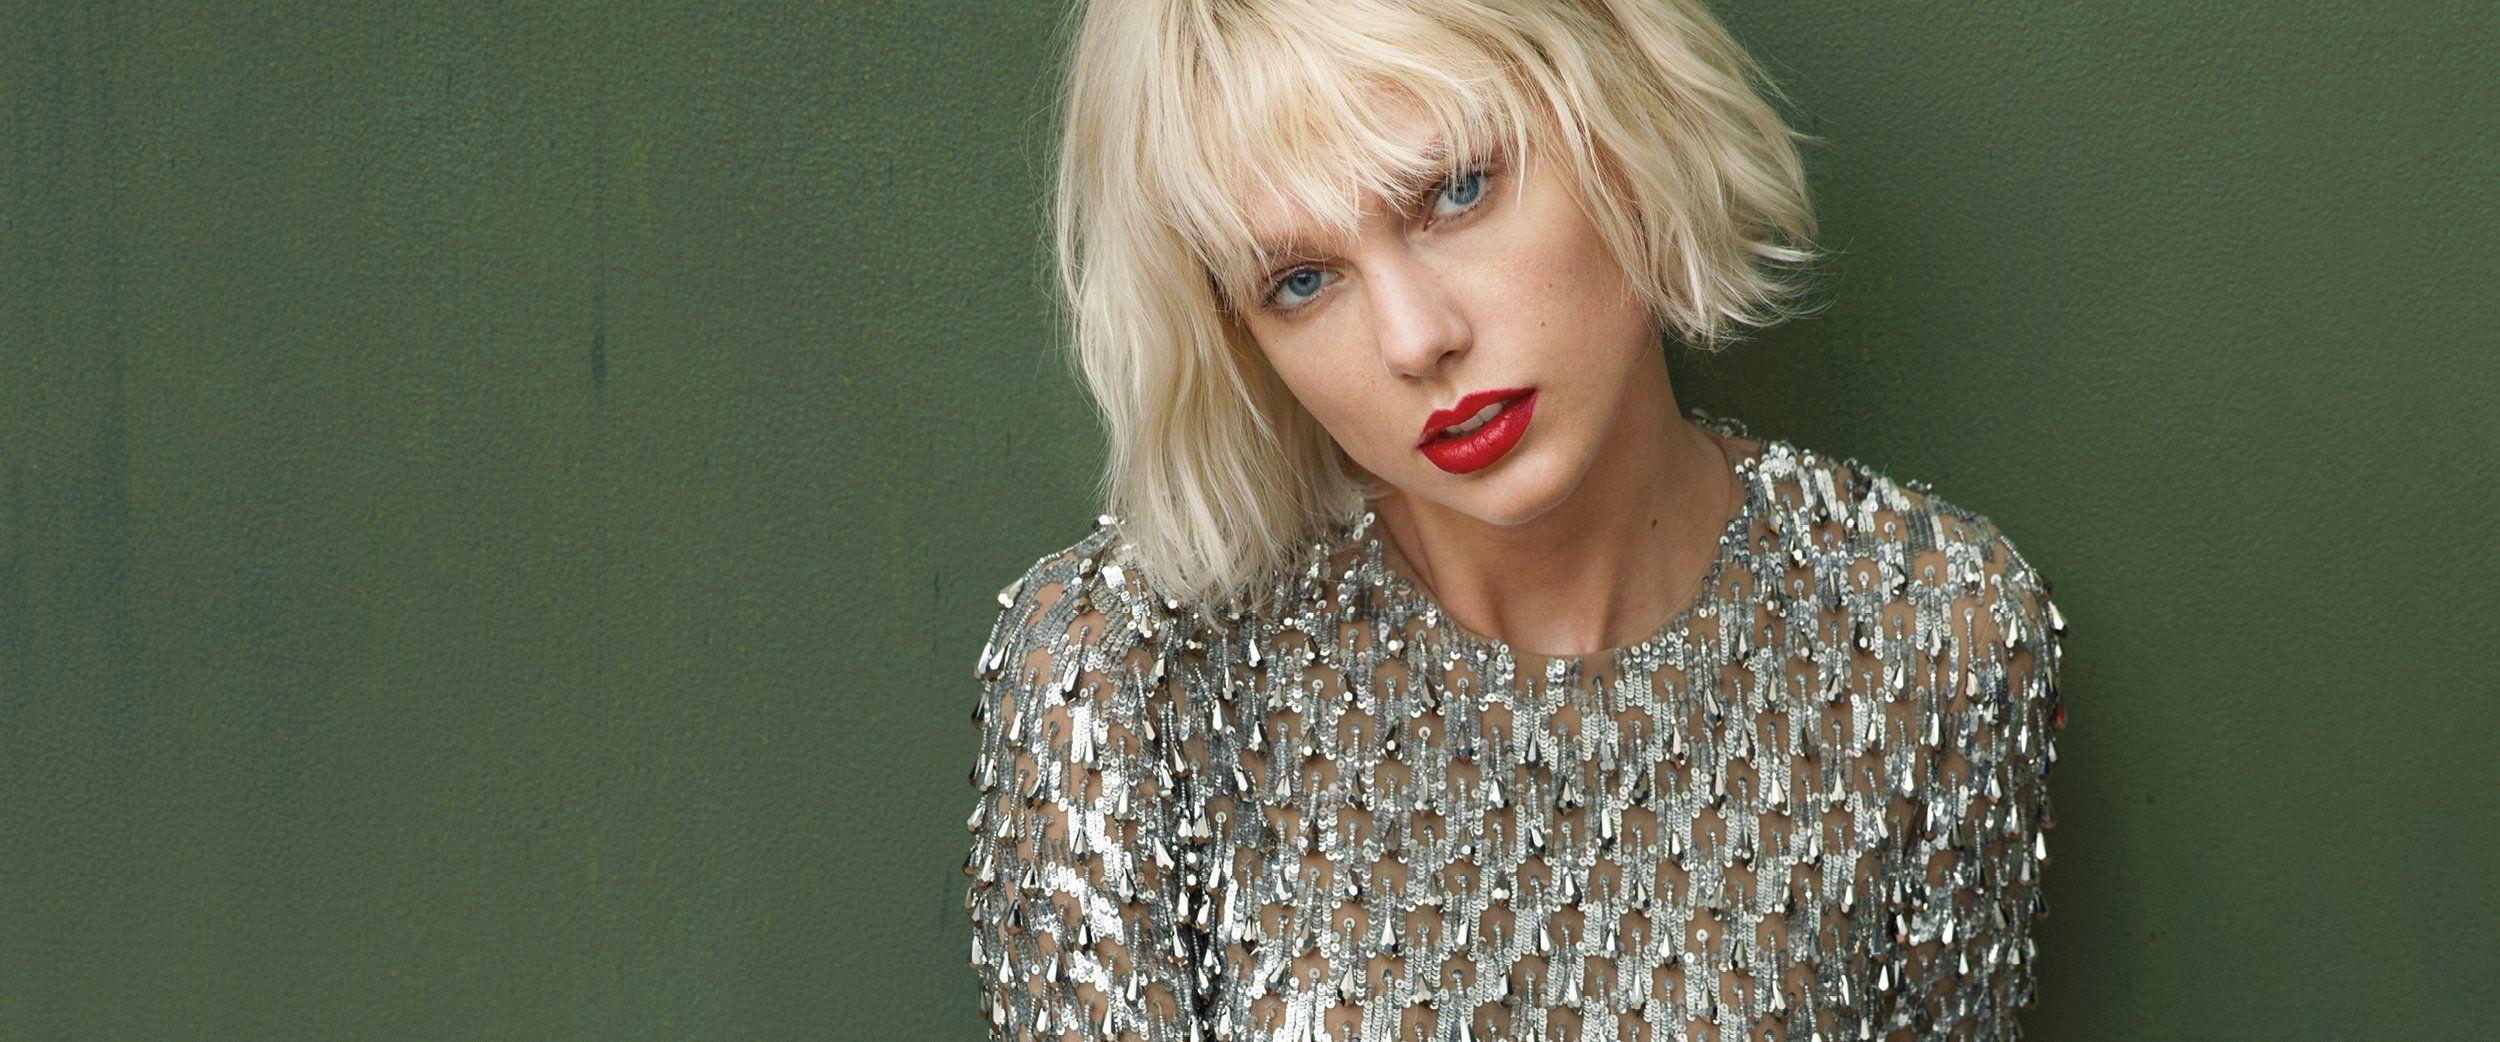 Taylor Swift Fashion, News, Photos and Videos - Vogue